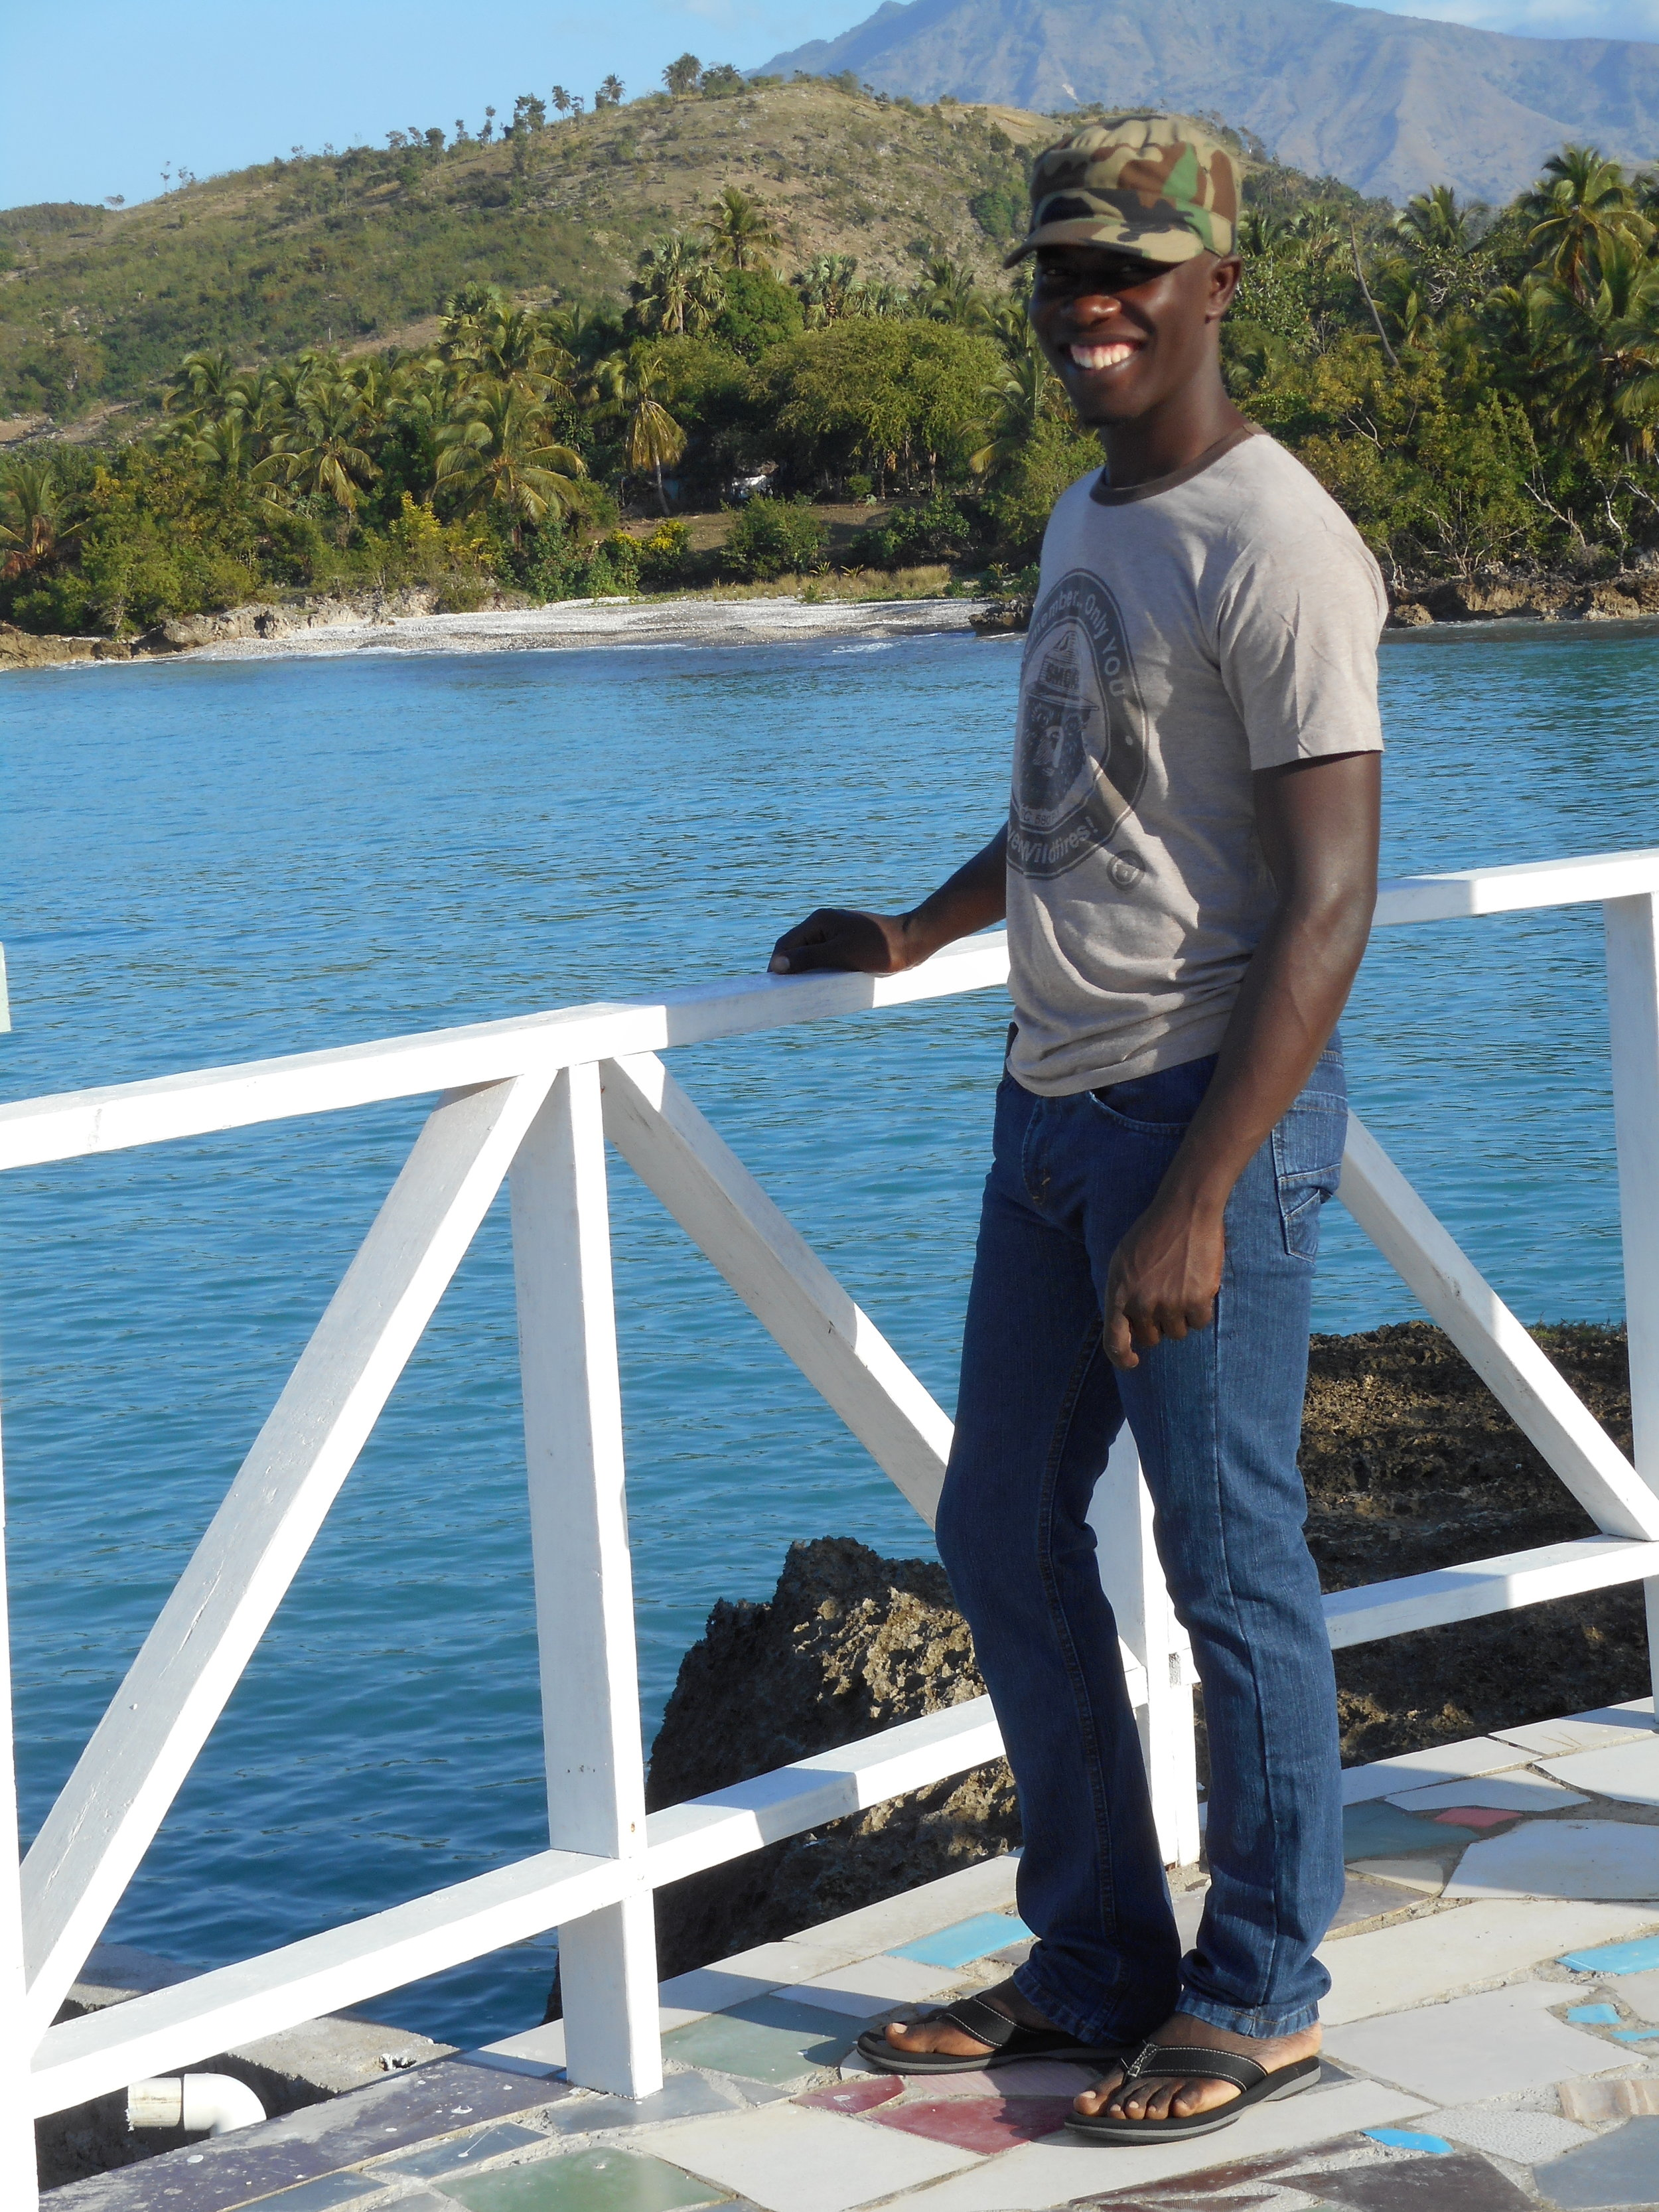 CoFounder/Director Cherly Dorvilier - Born and raised in Duchity, Cherly has always dreamed of being able to return from school in Port-Au-Prince and start a program to help the youth in his own community have a better life.